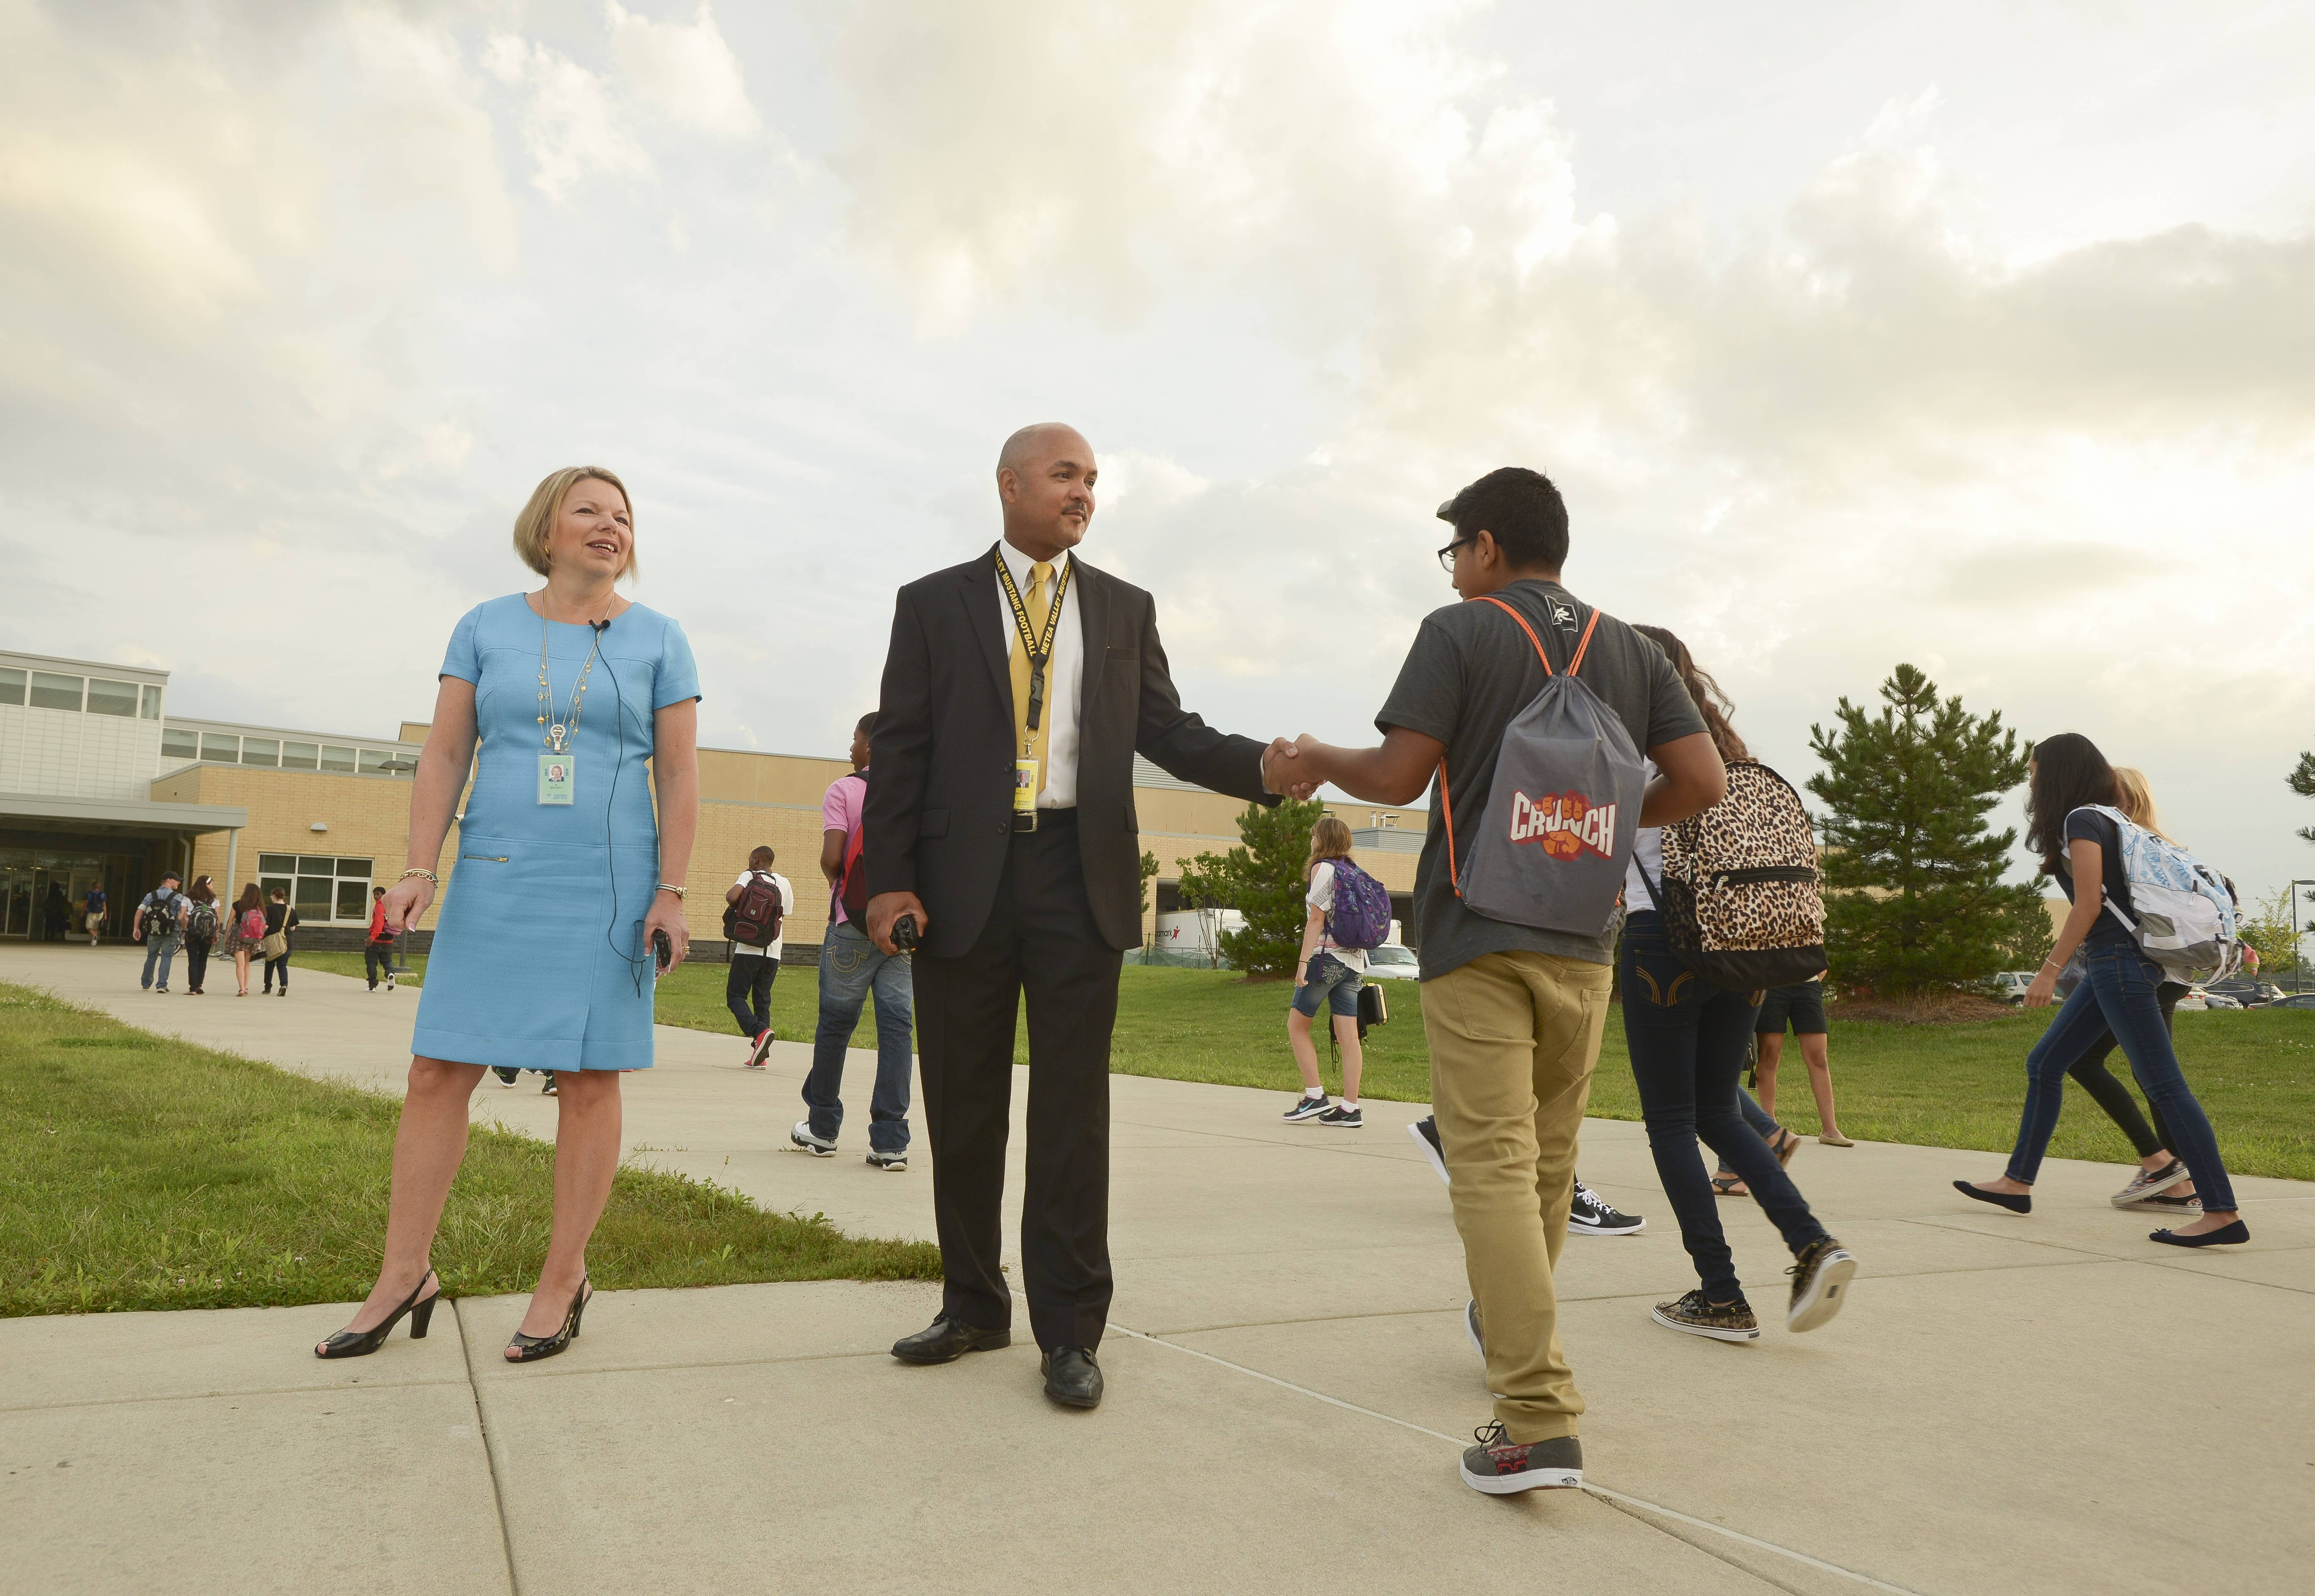 Karen Sullivan, the new superintendent of Indian Prairie Unit District 204, and Darrell Echols, new principal of Metea Valley High School, greet students as they arrive for the first day of classes at Metea Valley High School in Naperville.